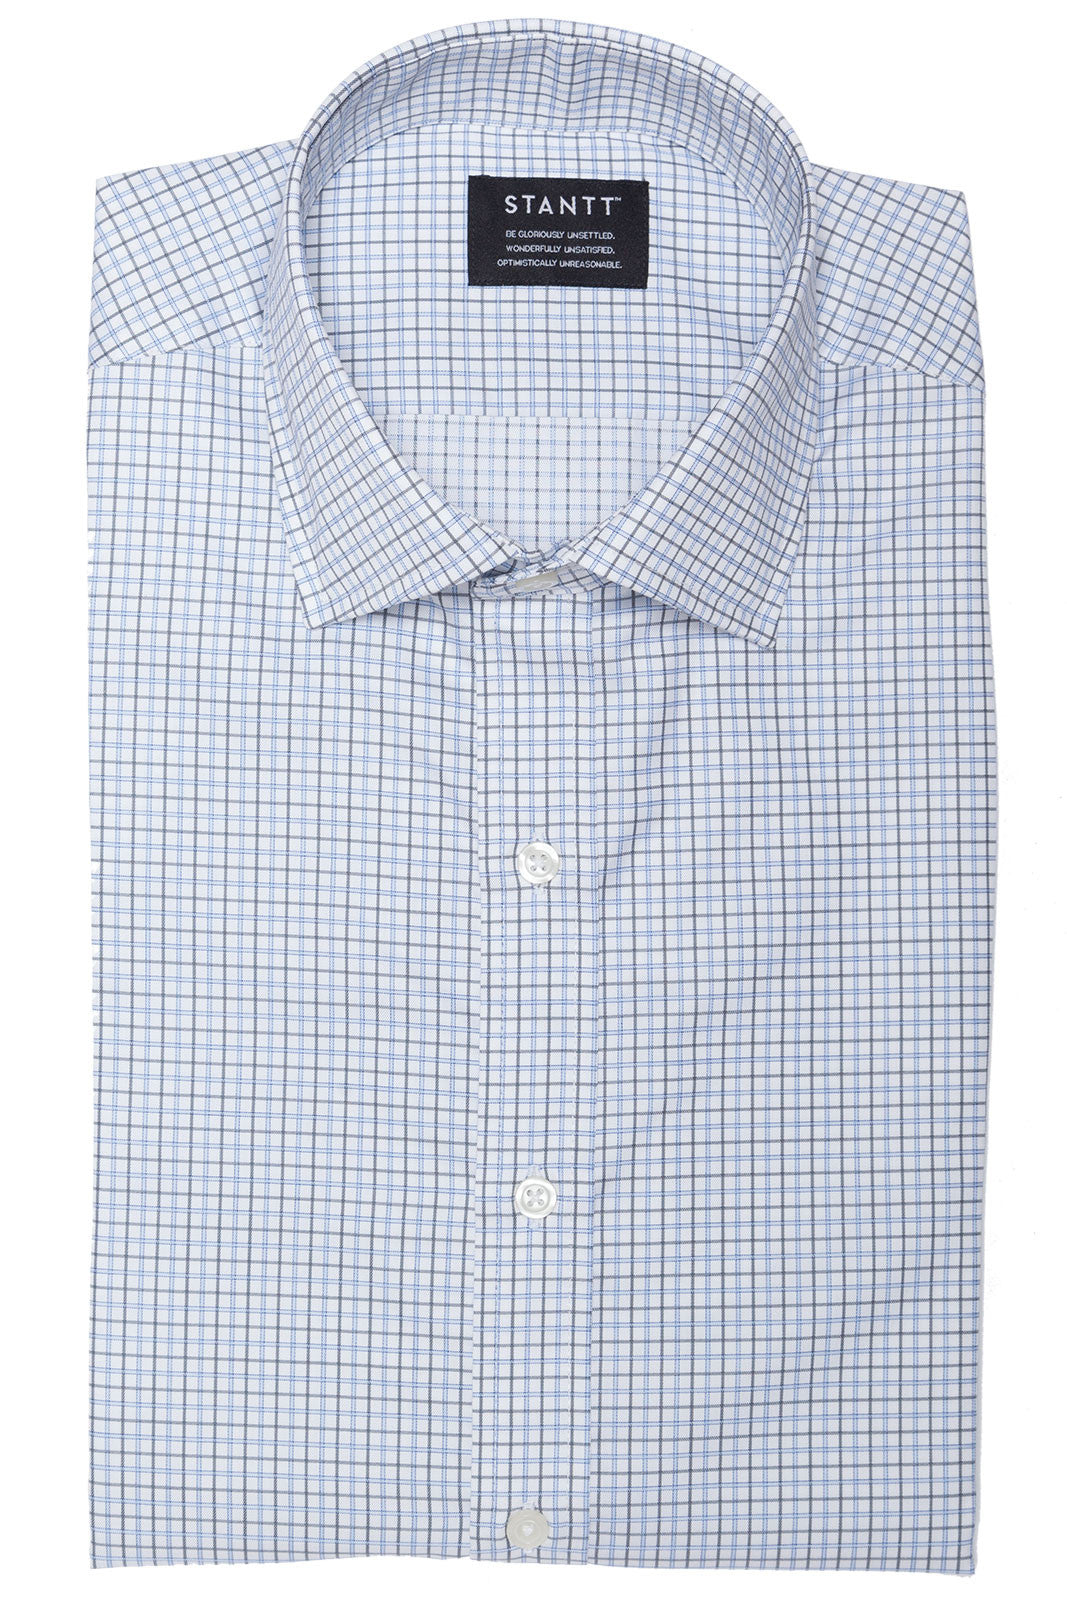 Grey and Light Blue Tattersall: Button-Down Collar, Barrel Cuff